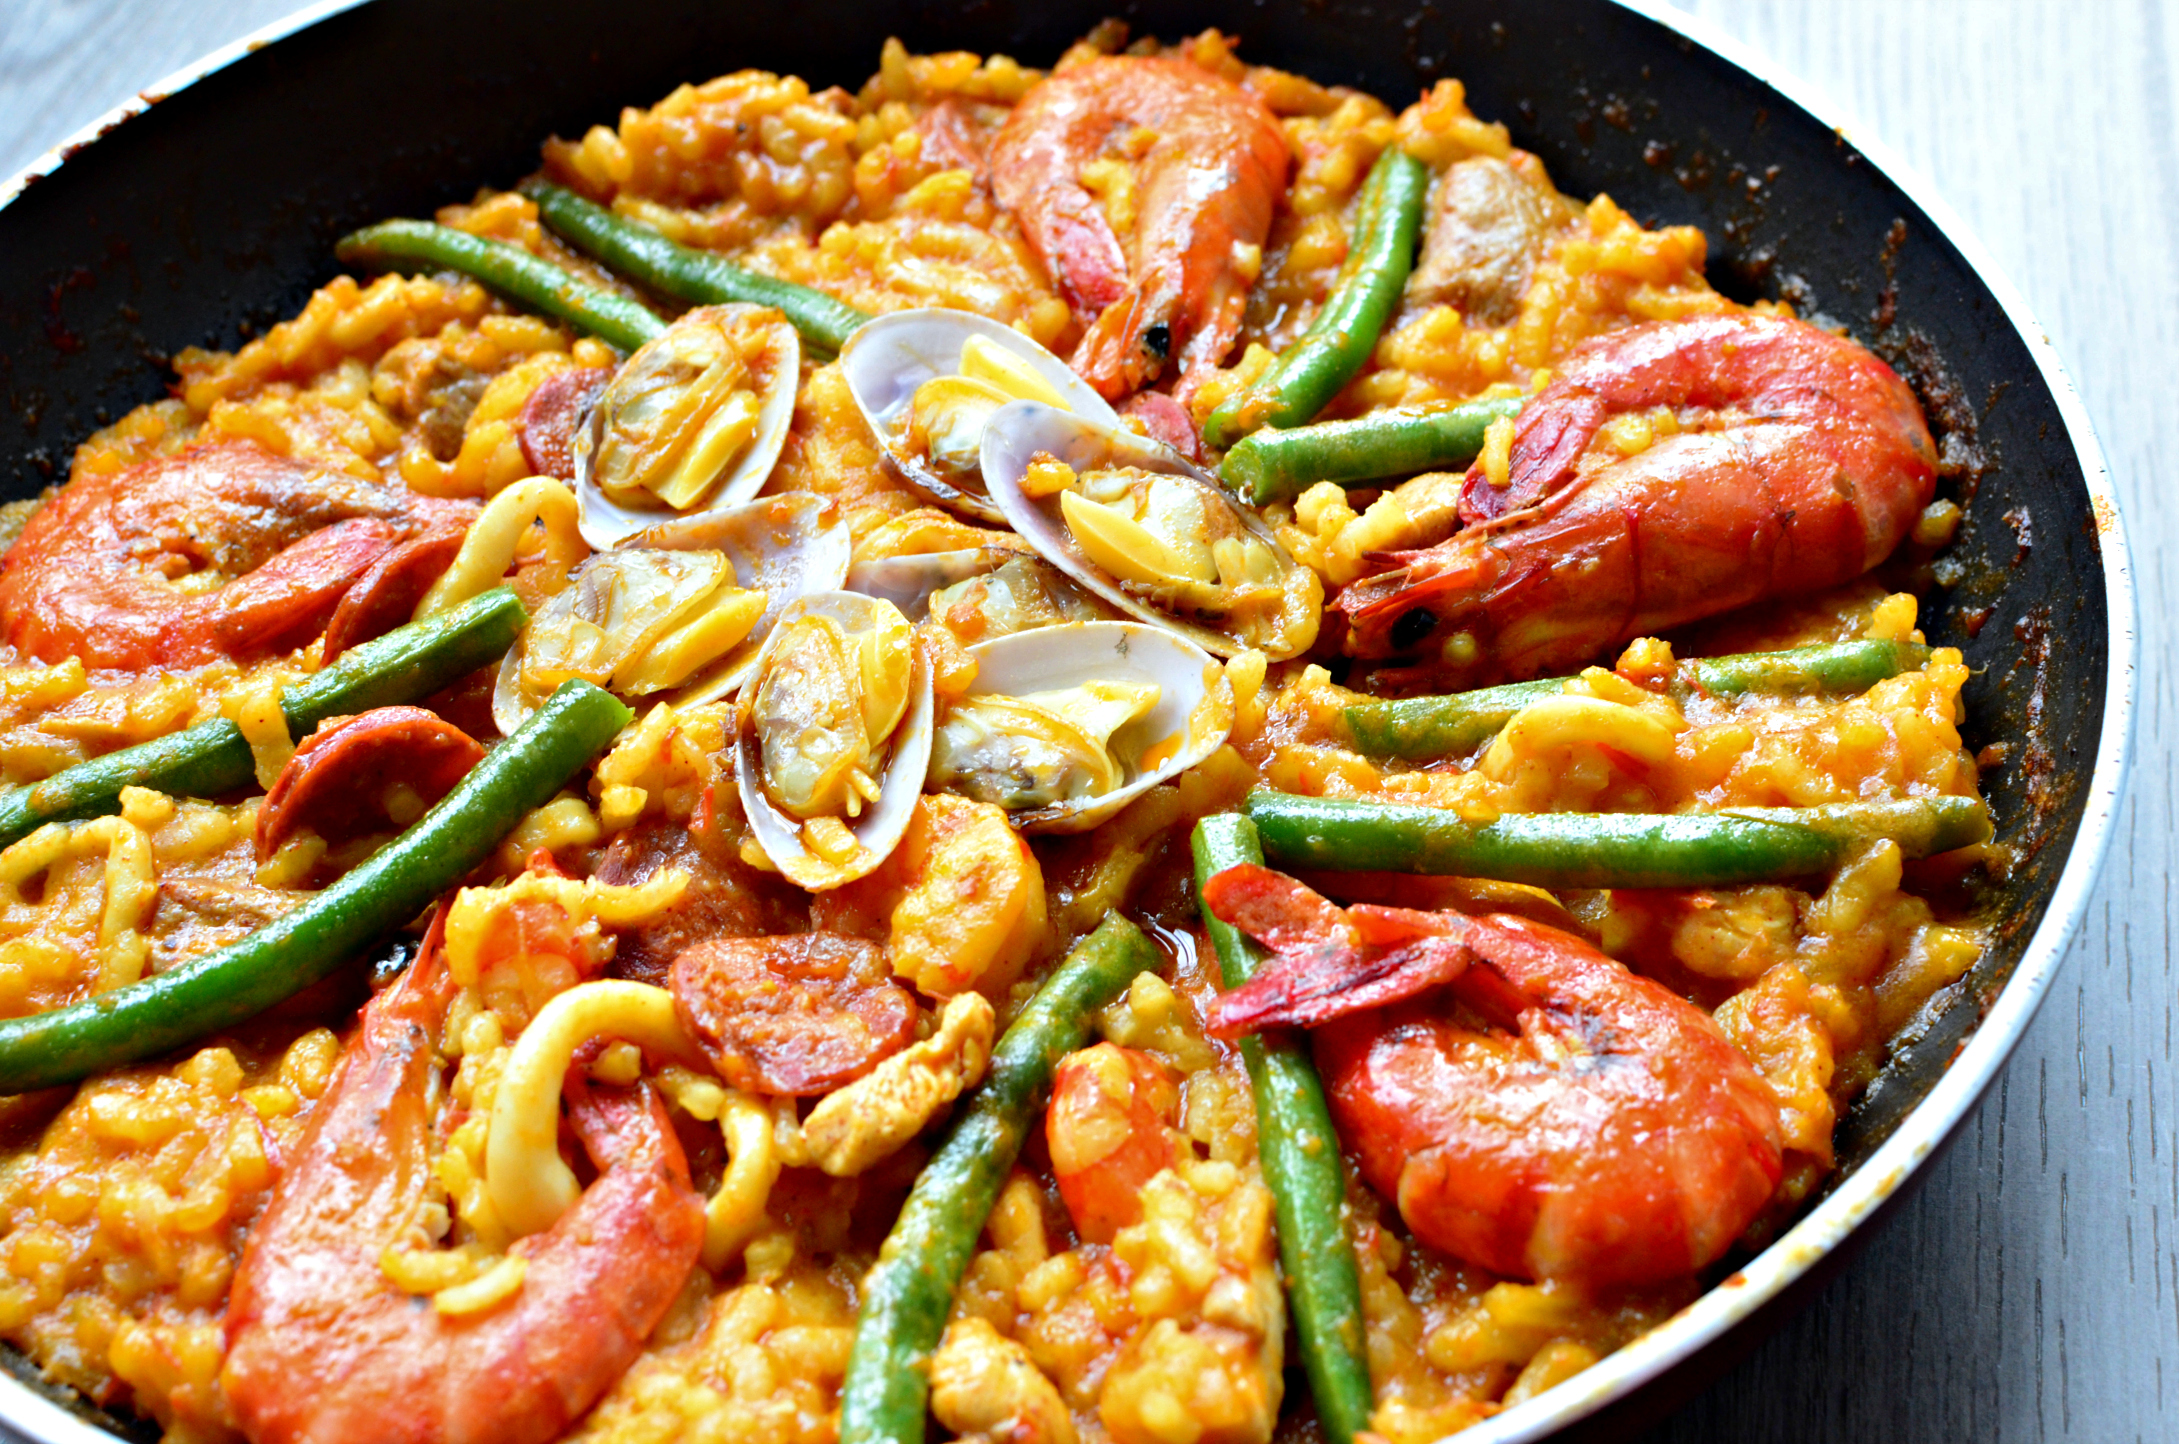 Try making Paella at home, it's so so so so good! My husband and I ...